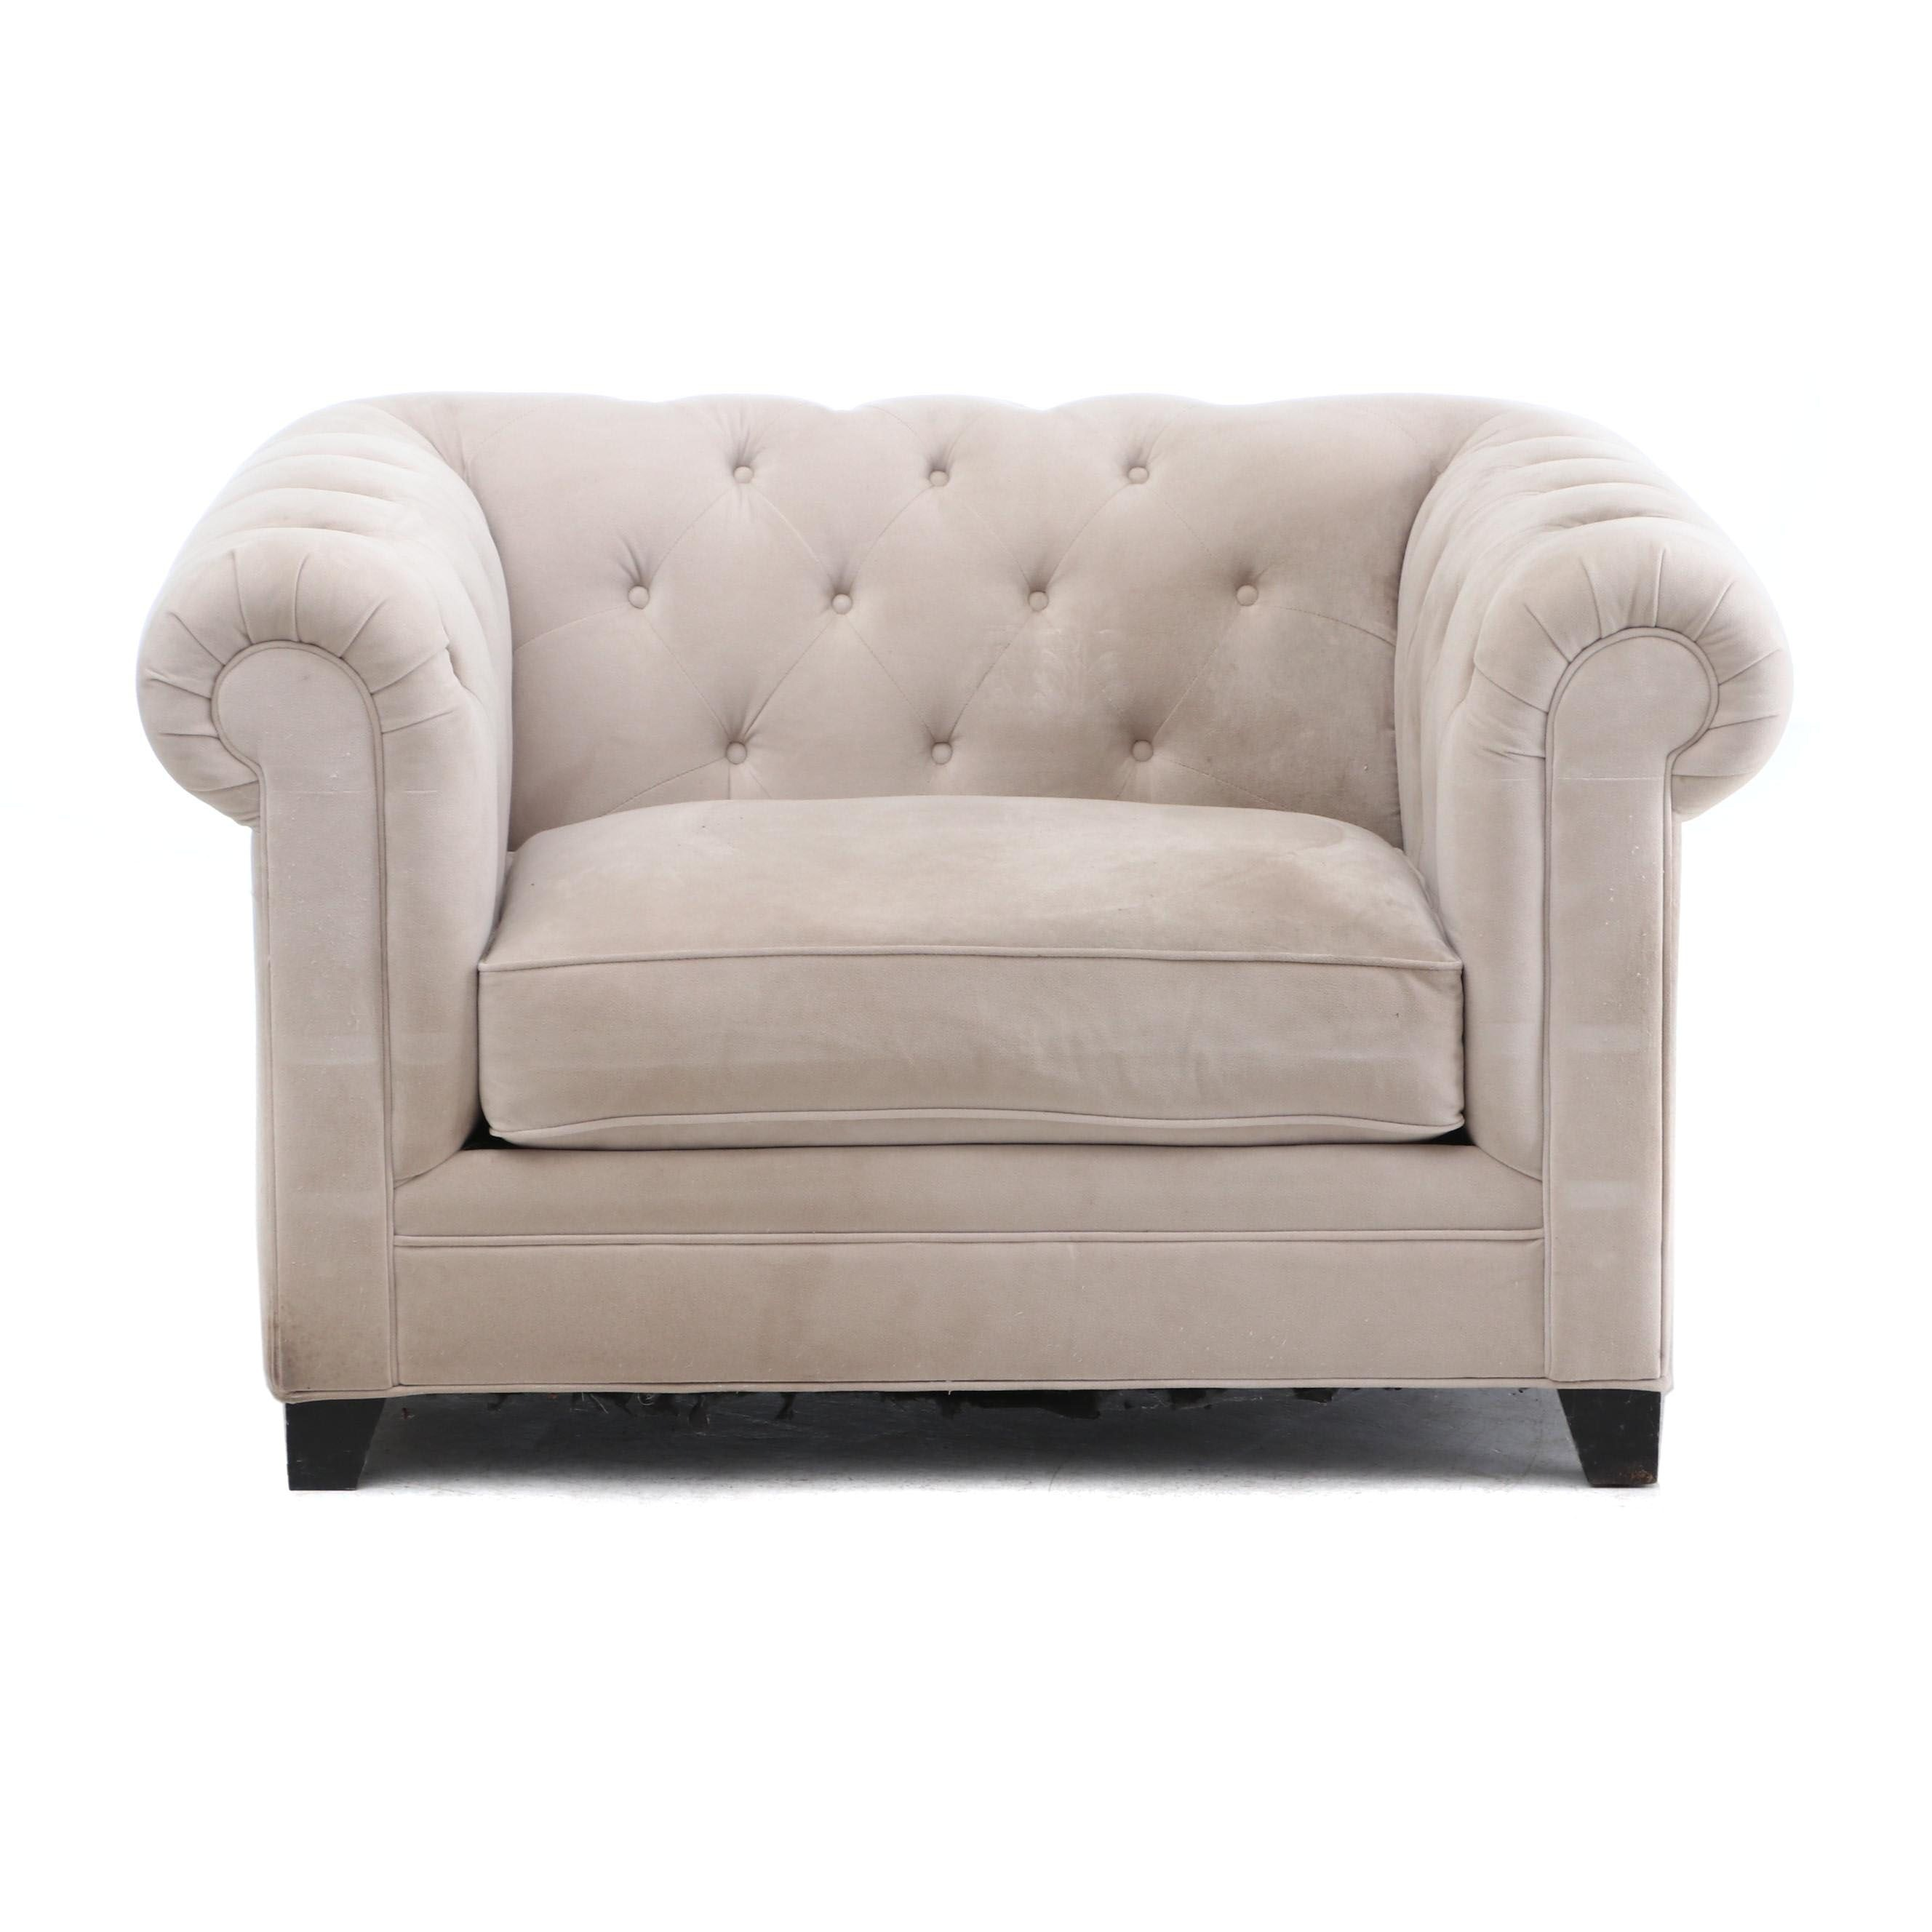 Over Sized Club Chair from the Martha Stewart Collection